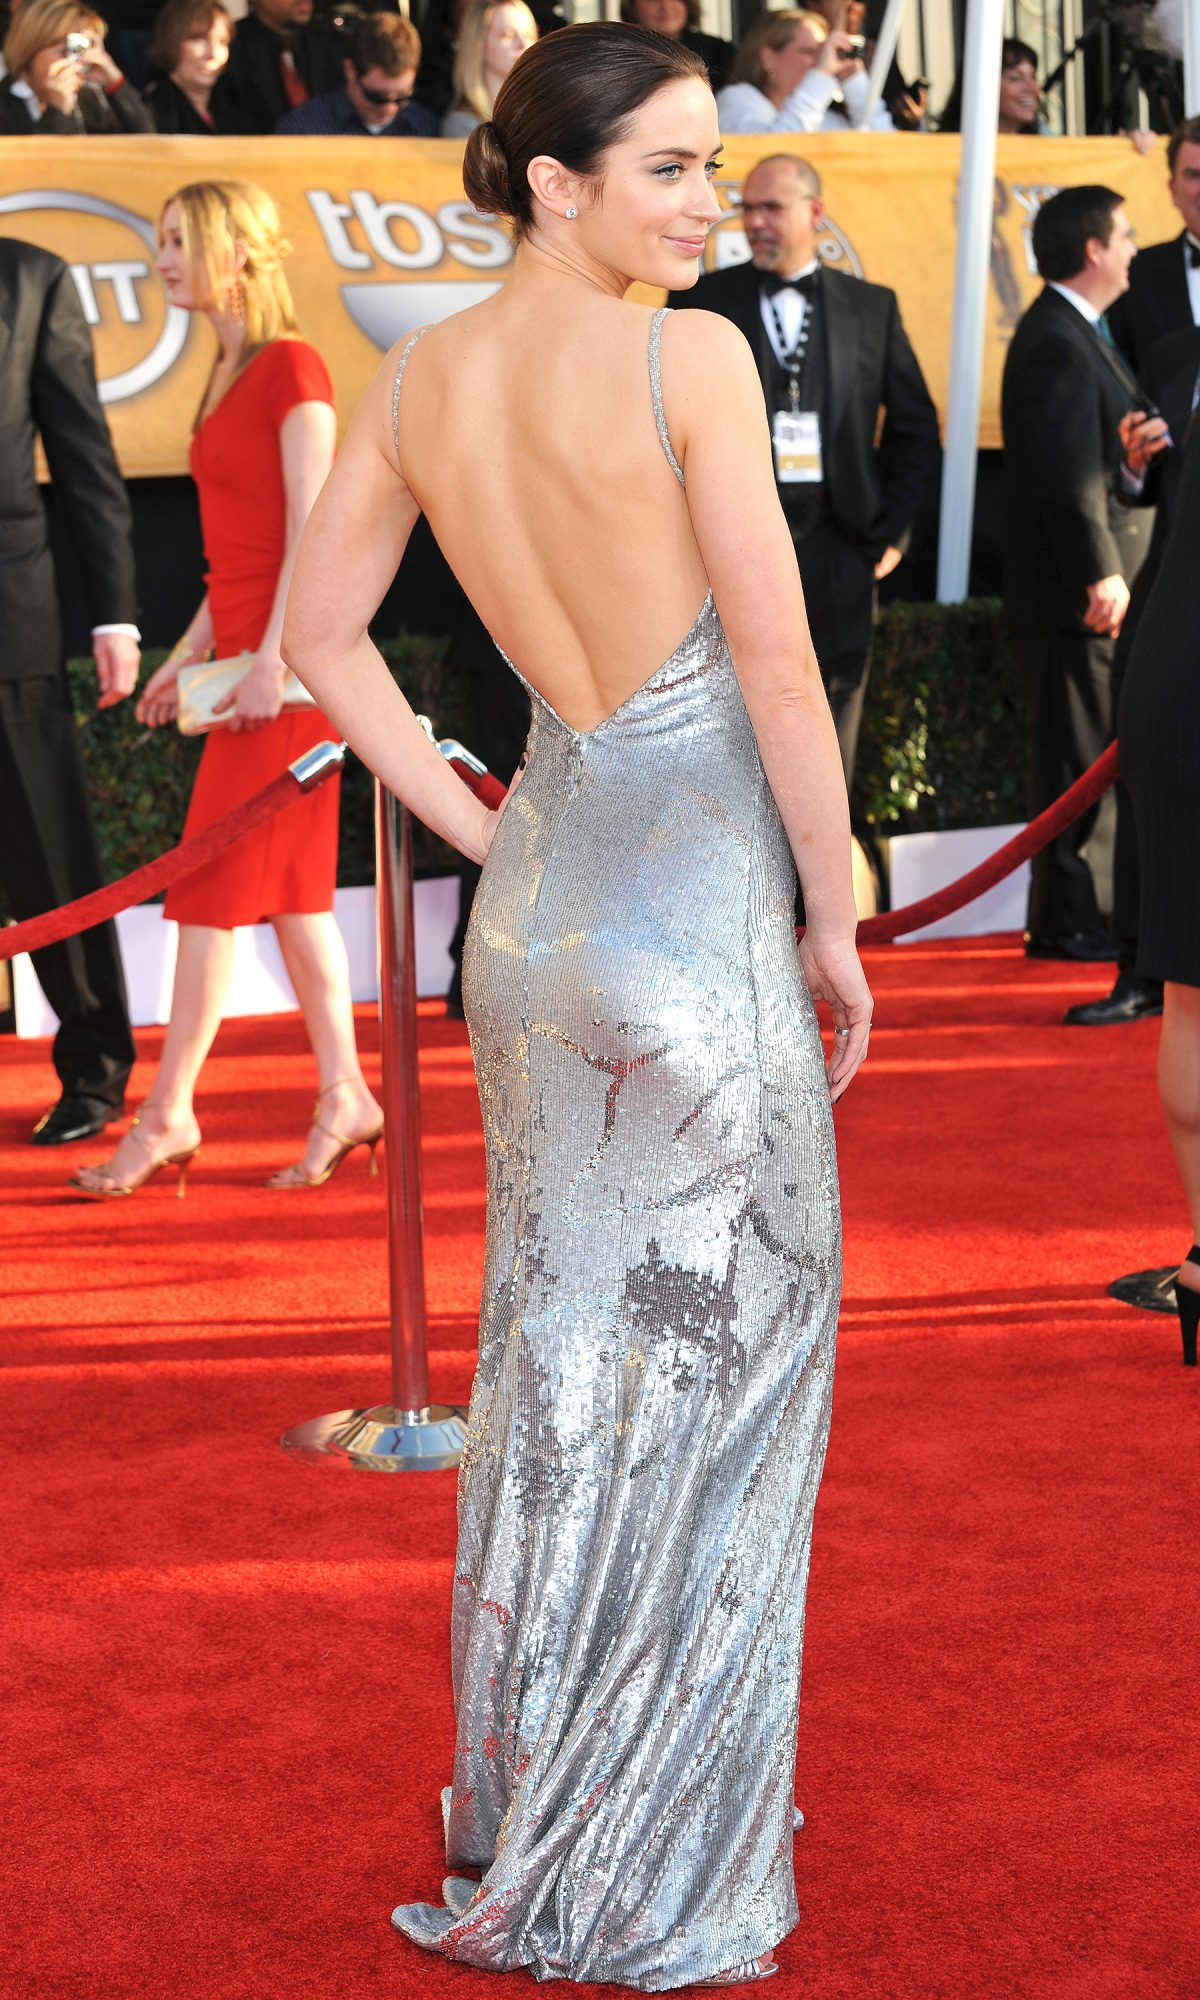 USA - 15th Annual Screen Actors Guild Awards�� - Arrivals